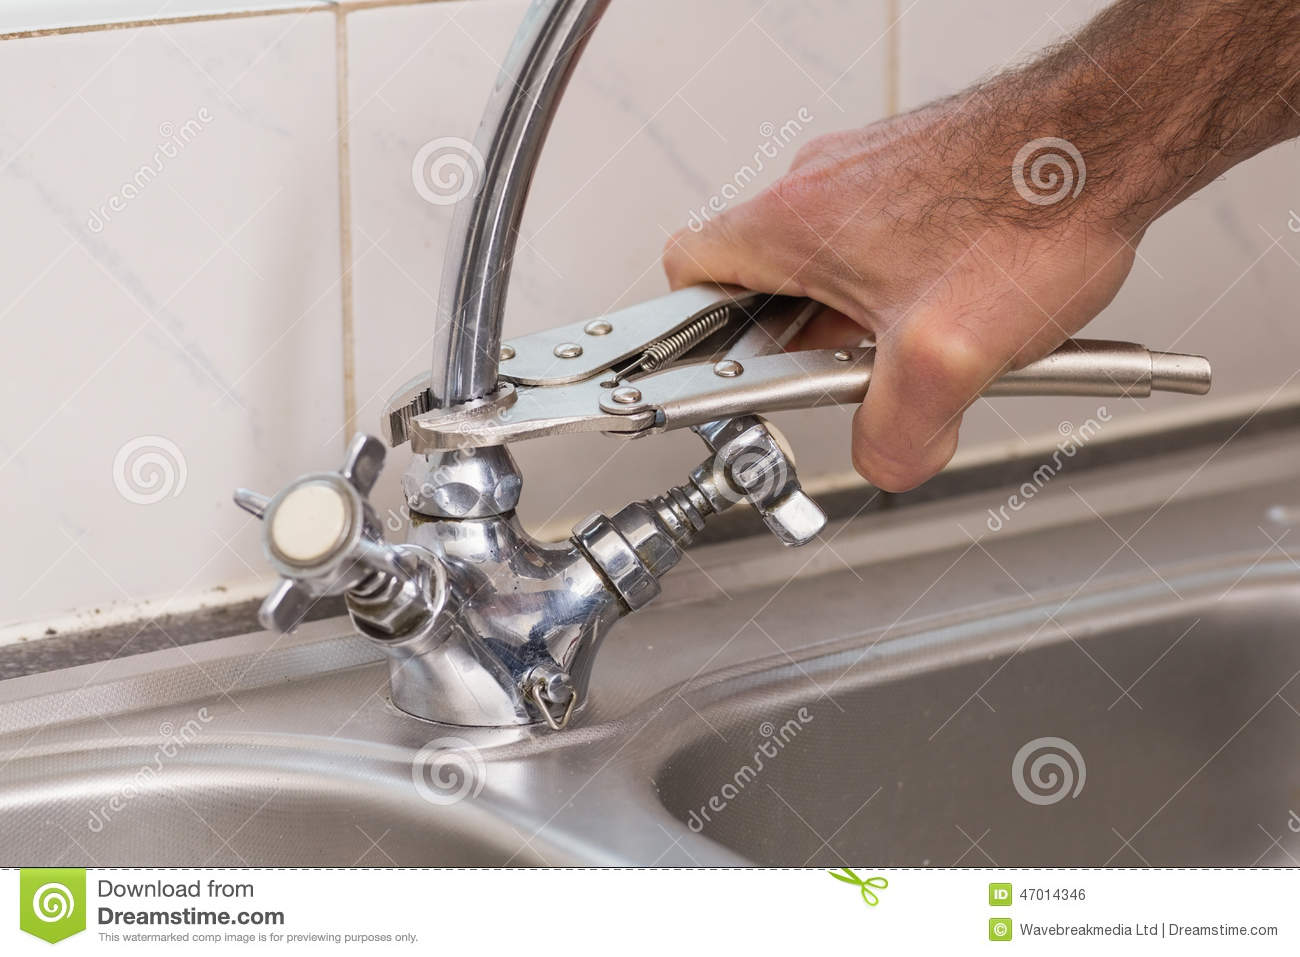 Man fixing tap with pliers stock photo. Image of part - 47014346